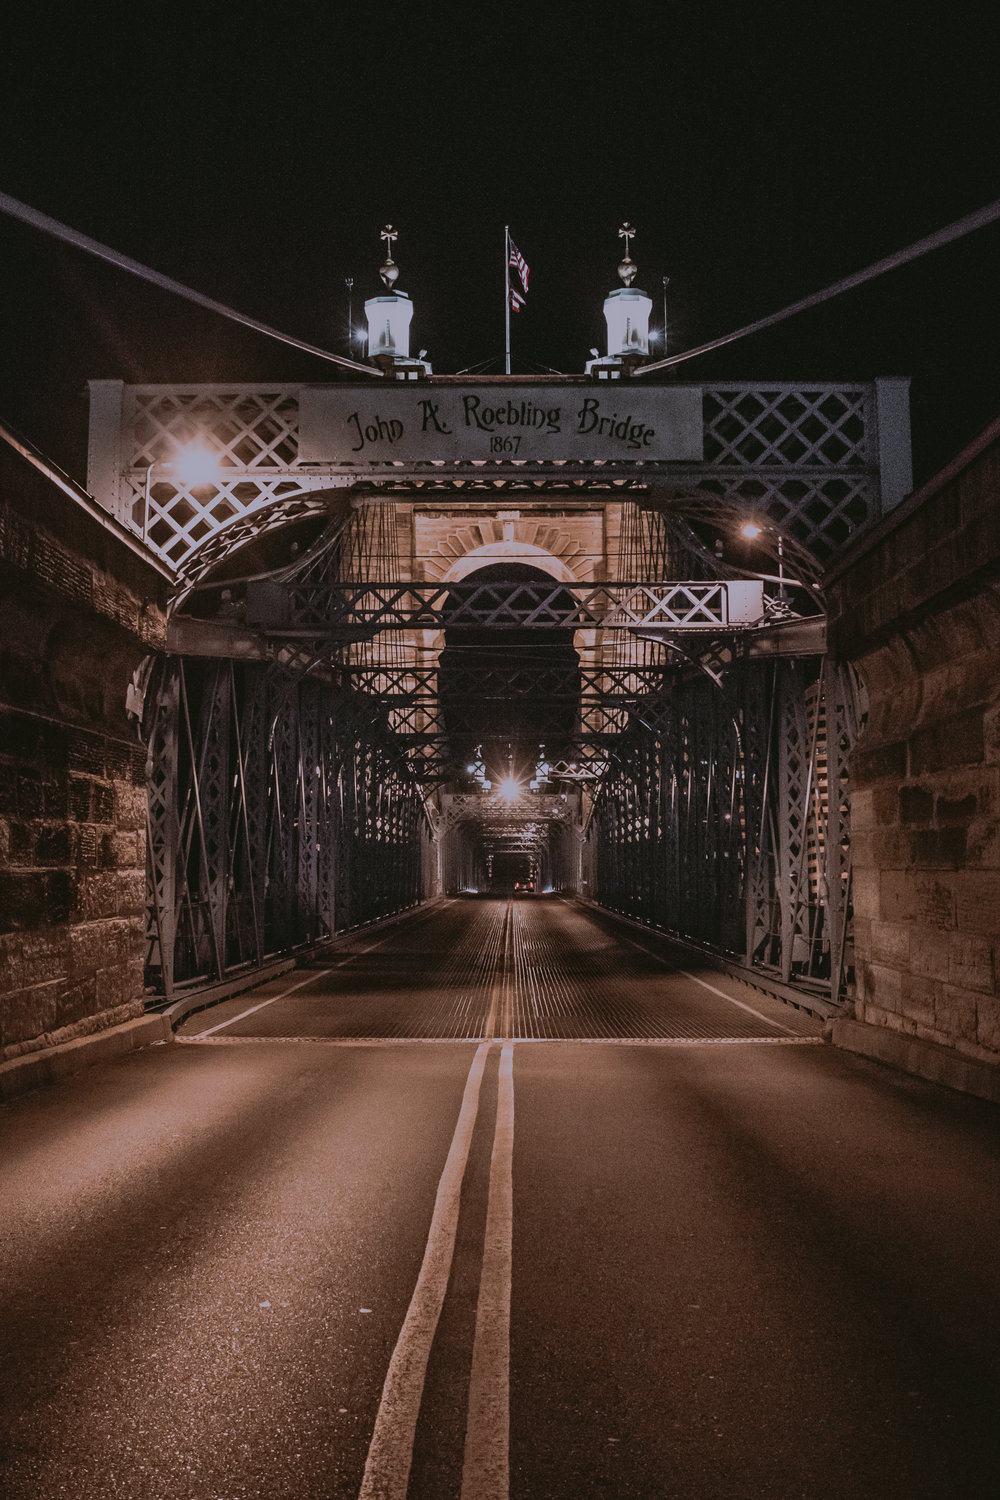 John A. Roebling Bridge in Cincinnati, Ohio. I had a fun and difficult time dodging cars to get this Shot.